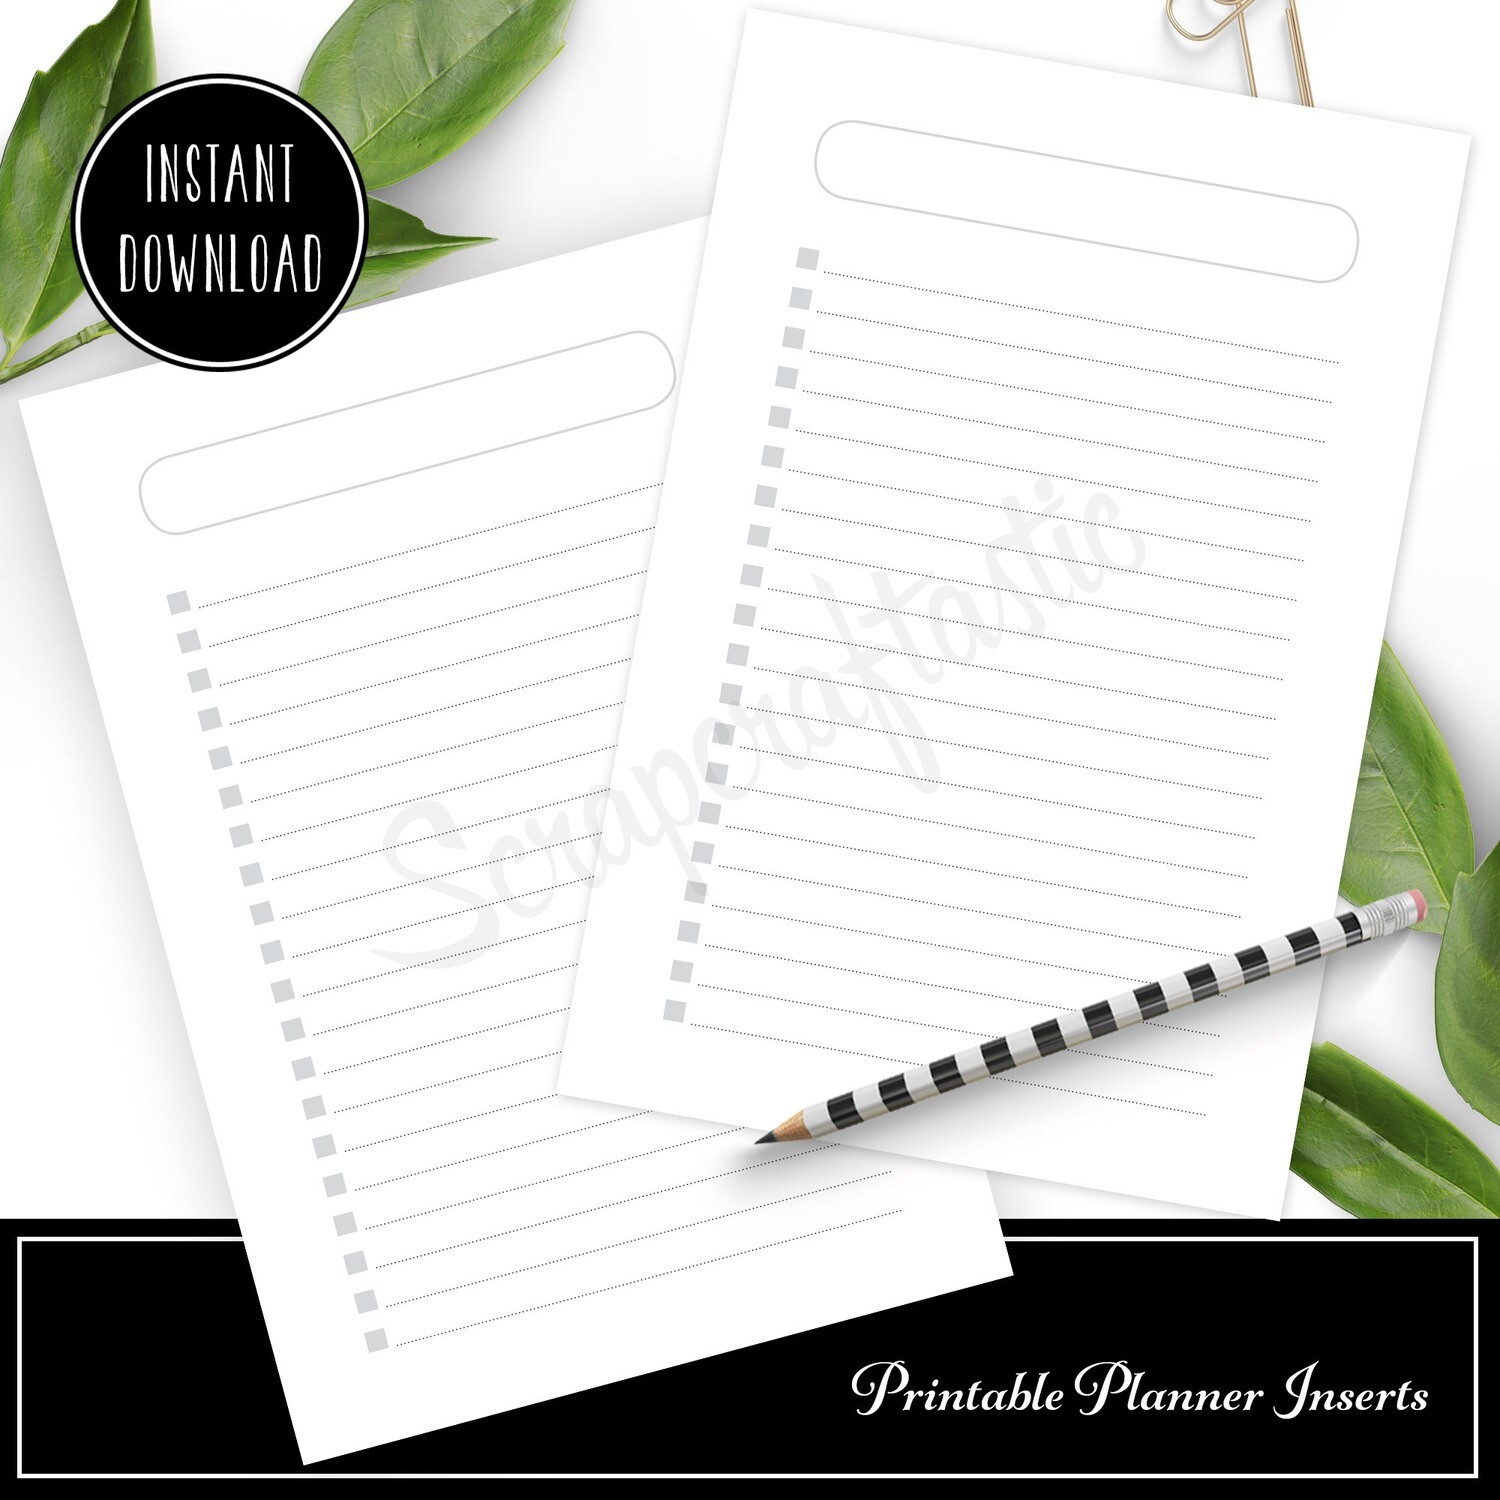 SKINNY MINI - Checklist Printable Planner Inserts